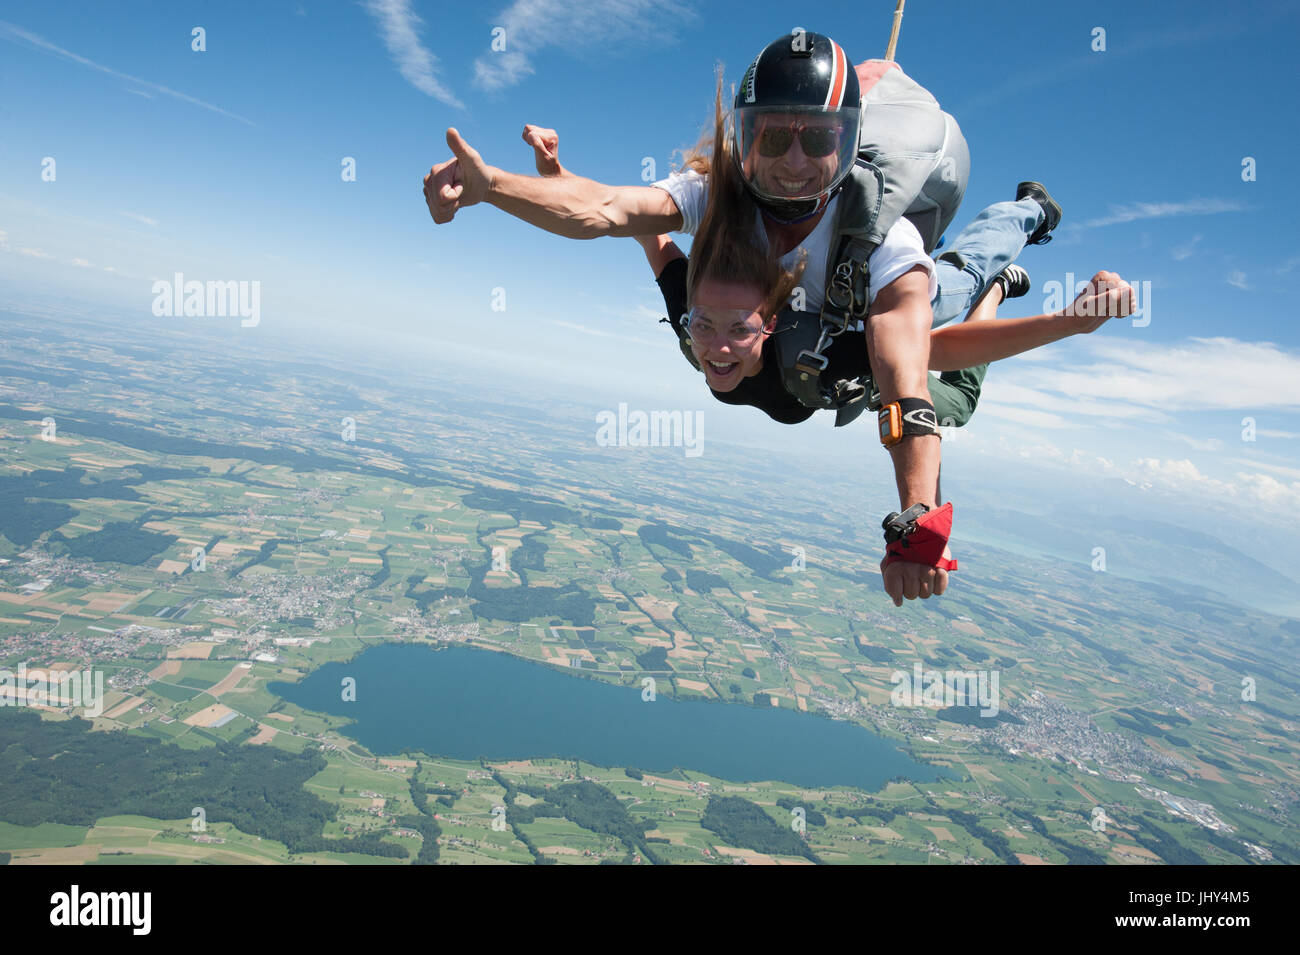 Girl doing a first tandem skydive - Stock Image